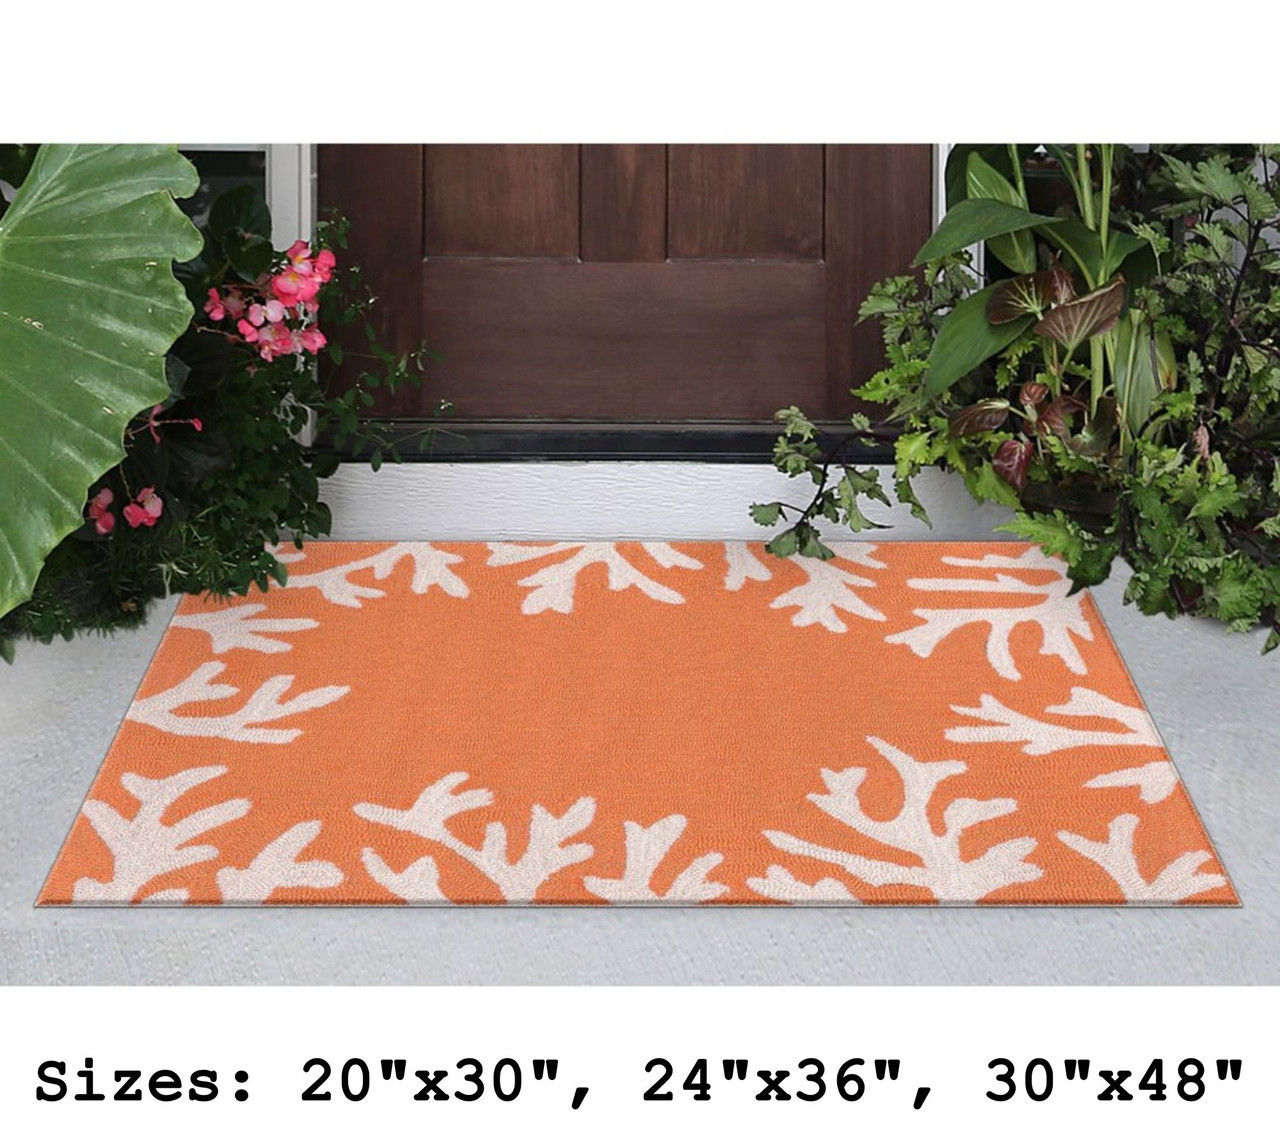 Capri Coral Border Indoor/Outdoor Rug -  Coral - Small Rectangle Lifestyle Available in 11 Sizes